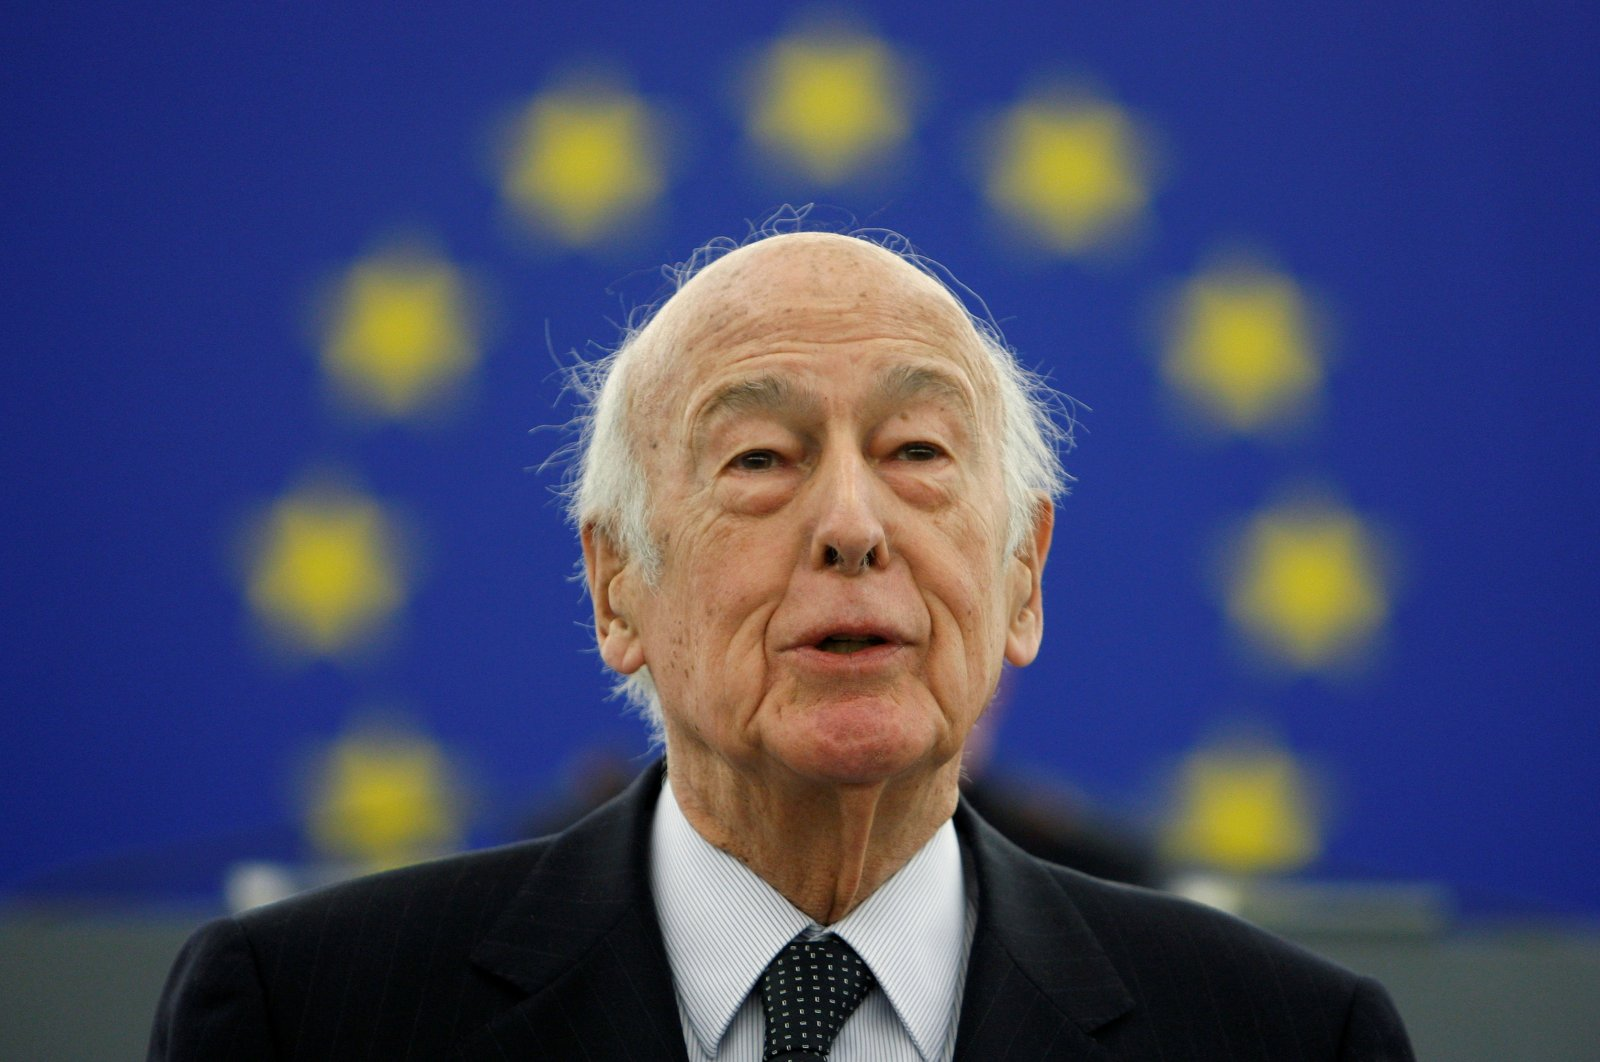 Former French President Valery Giscard d'Estaing addresses the European Parliament during a ceremony to celebrate the 10th anniversary of the European Common Currency in Strasbourg, France January 13, 2009. (Reuters Photo)